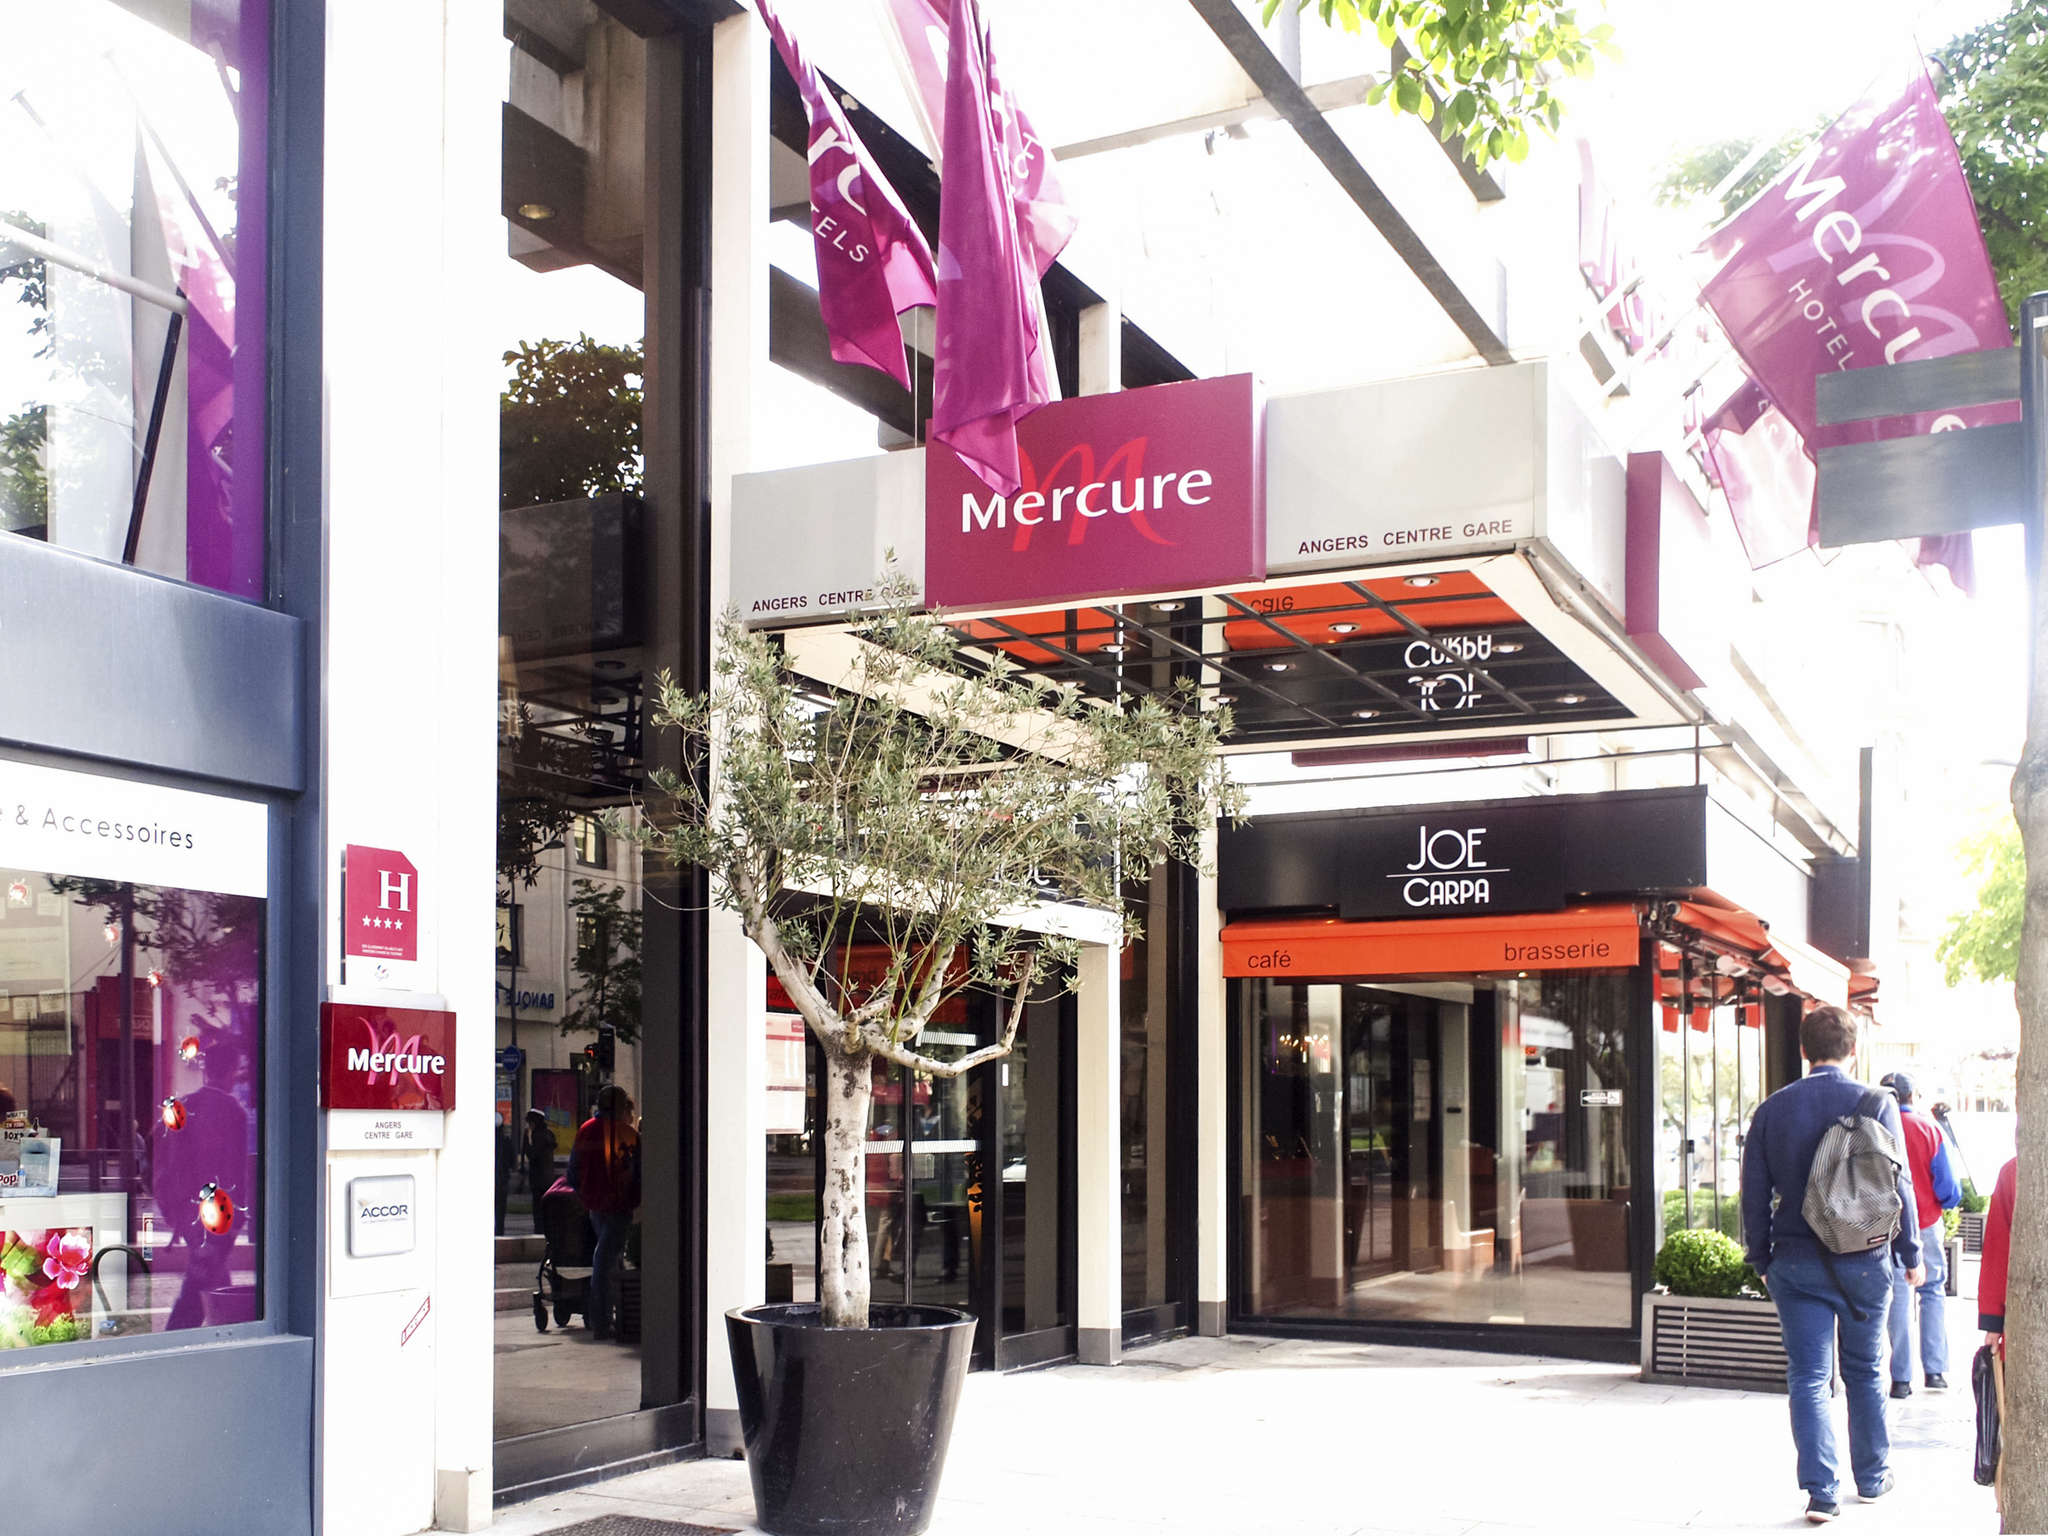 Hotel In Angers Mercure Angers Centre Gare Hotel Accor